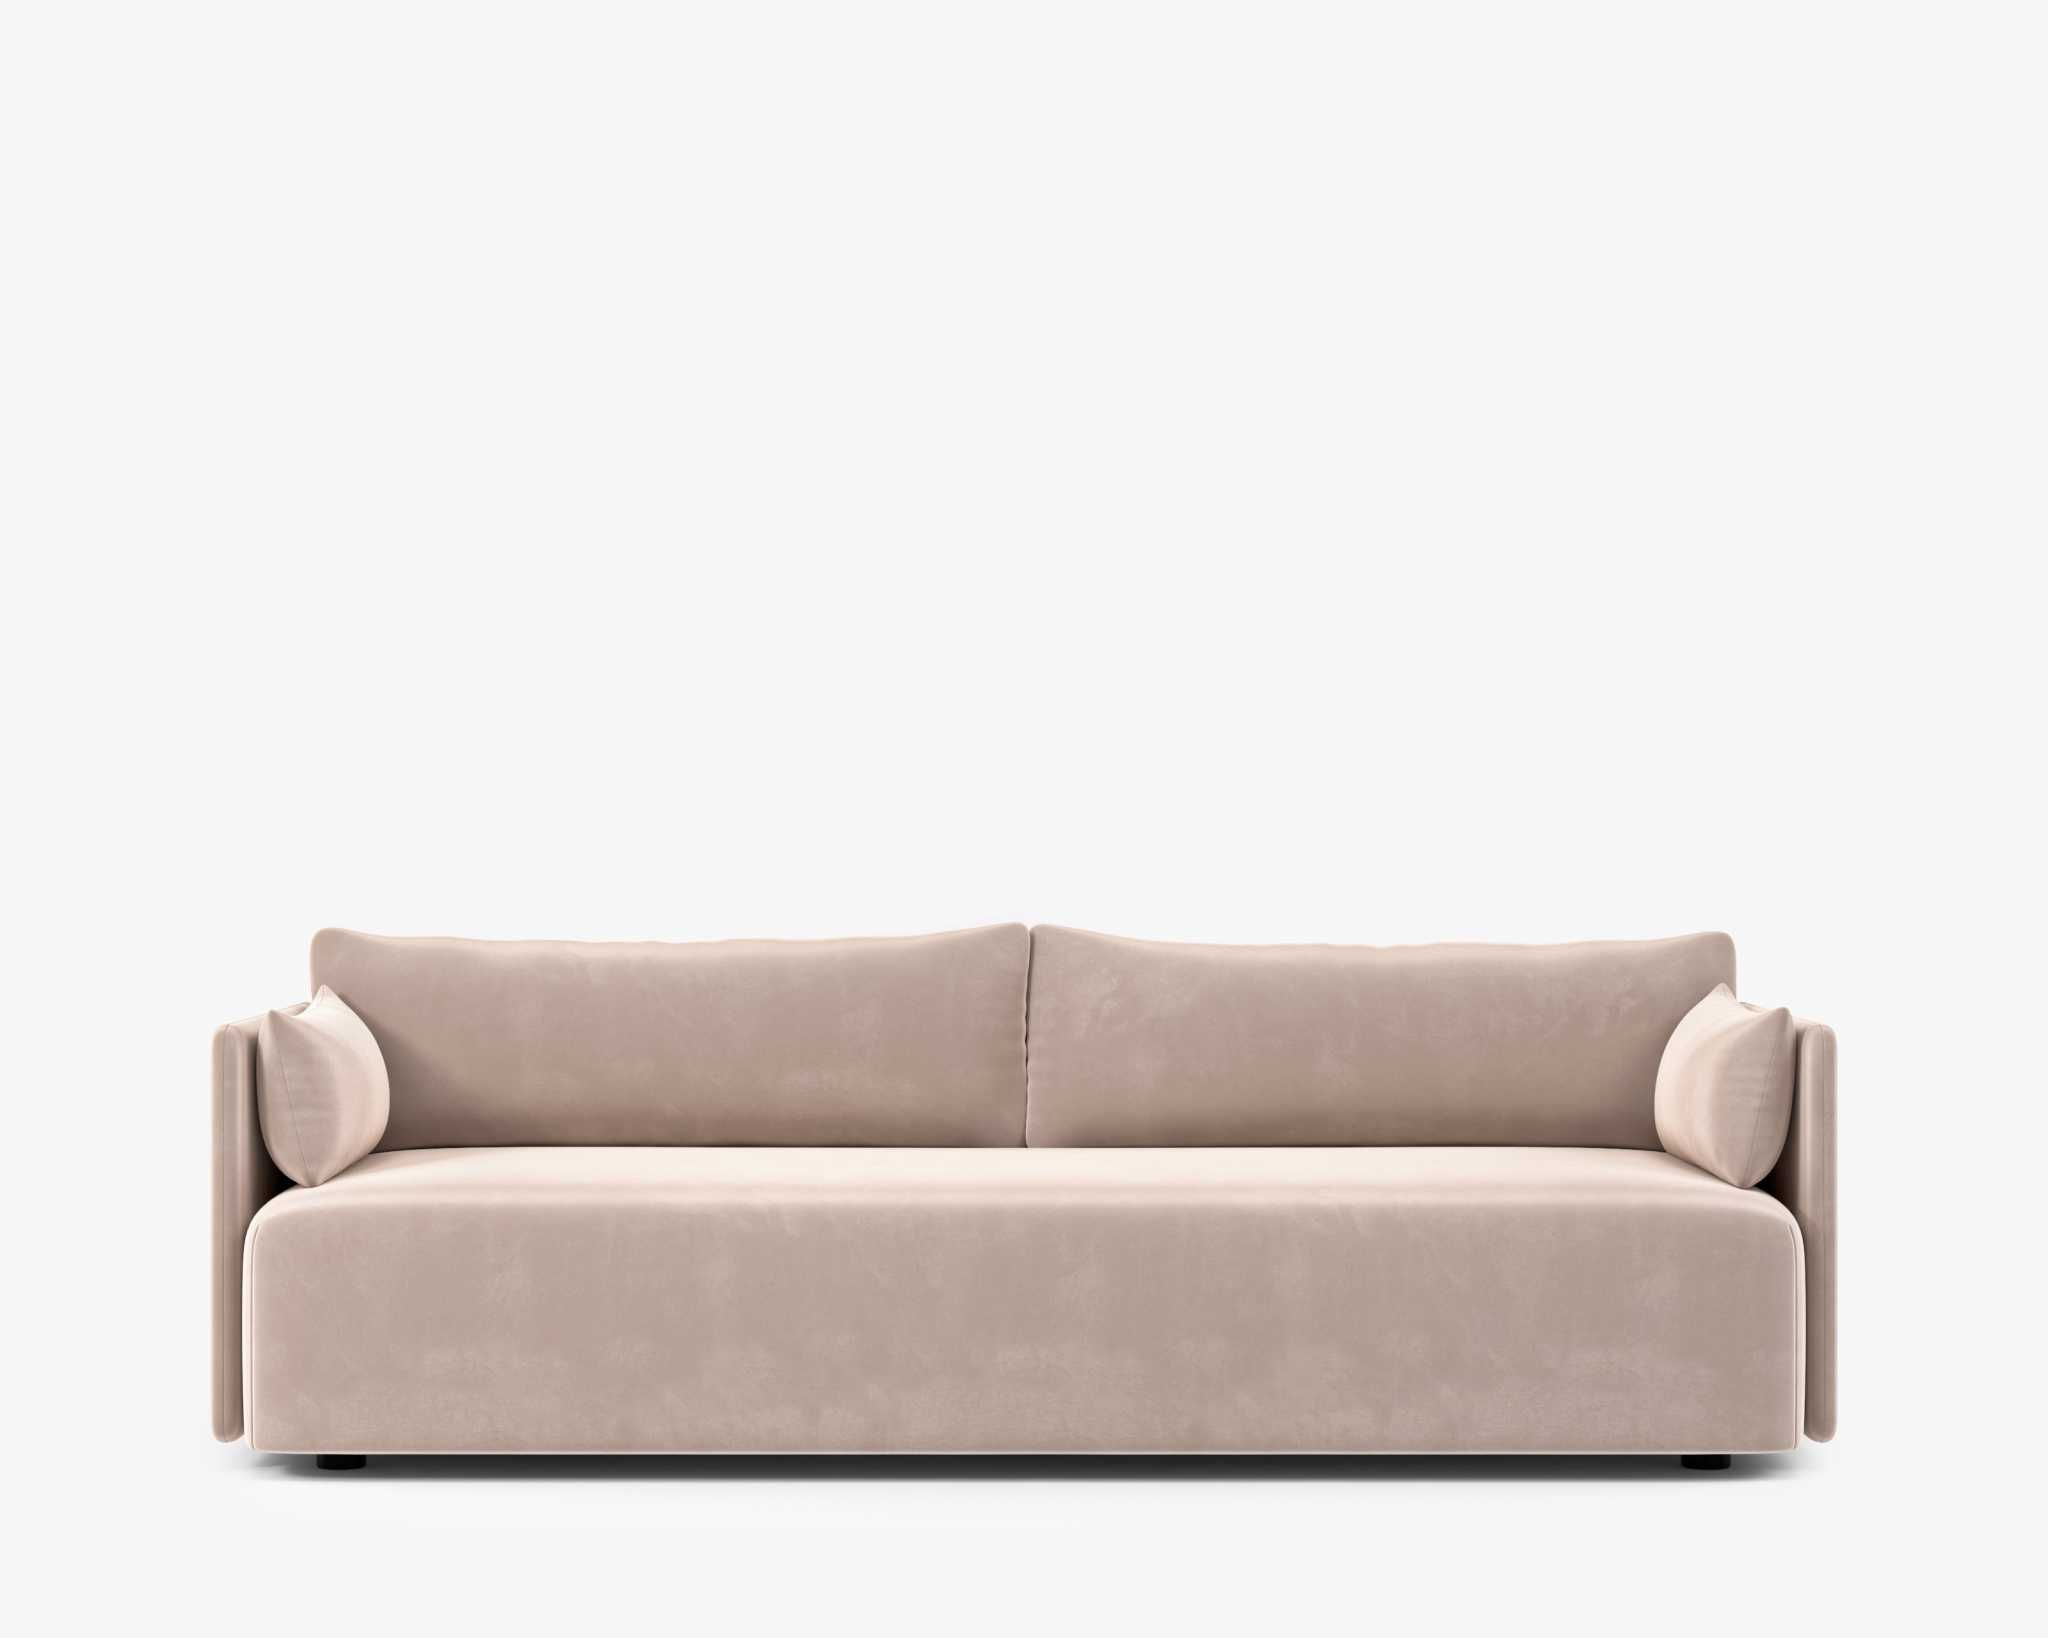 Rove Concepts, Sofa In Widely Used Annette Navy Sofas (View 5 of 15)